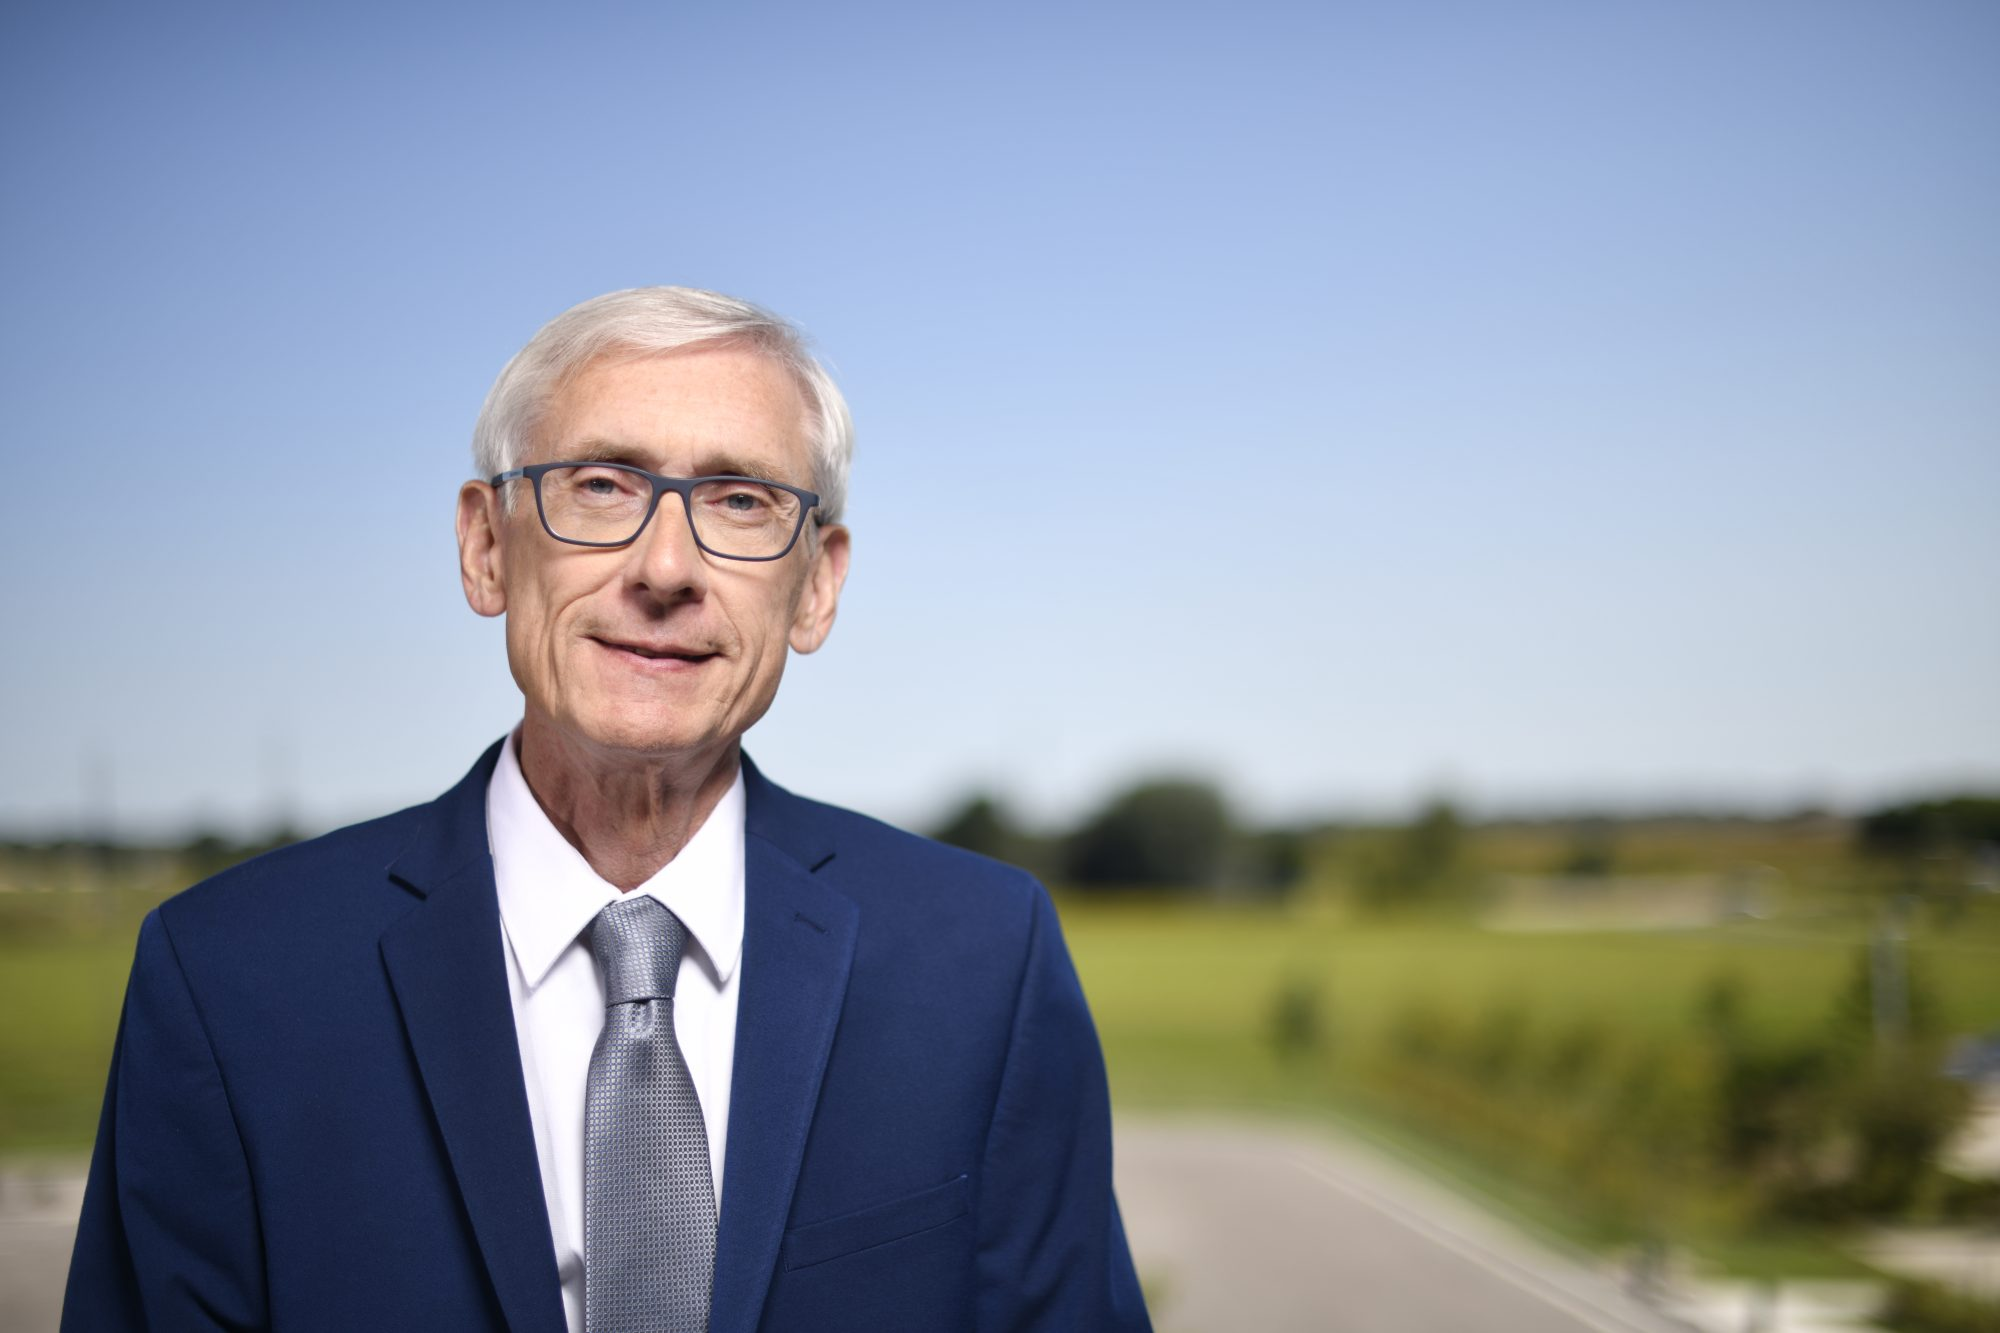 Rural and Urban School Districts Express Support for Governor Evers' Budget